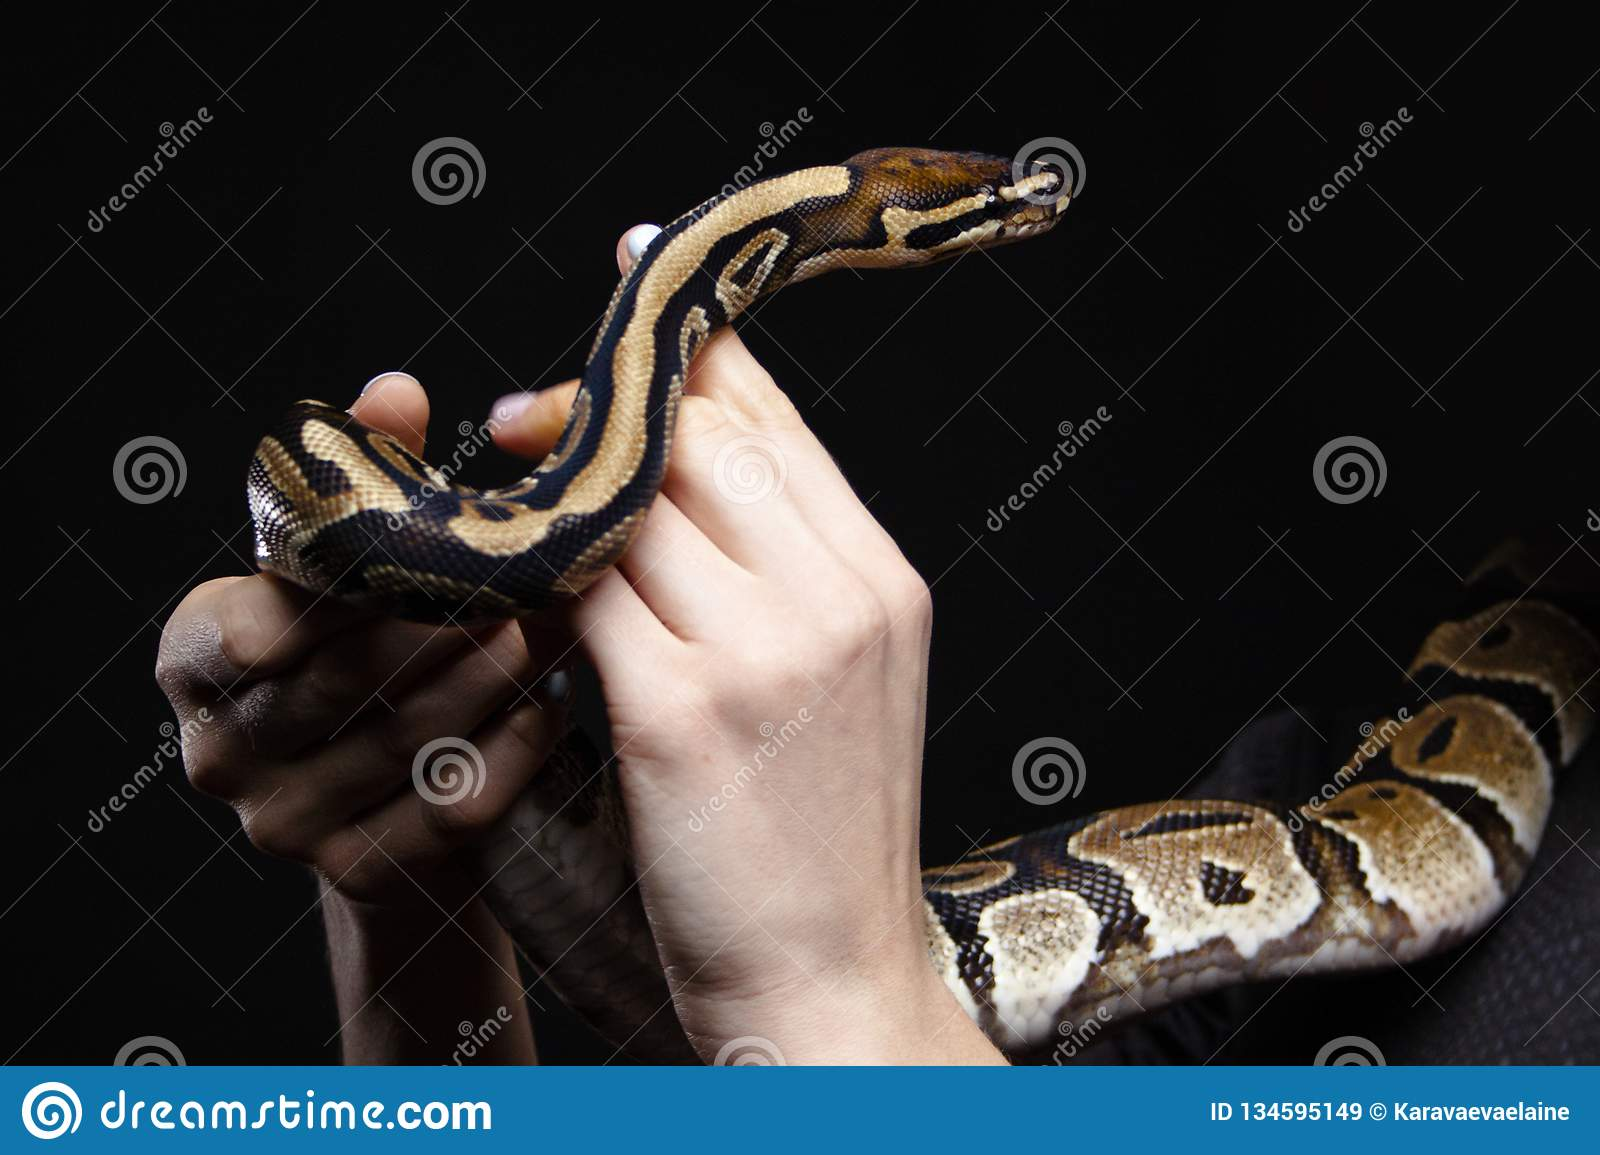 Ball python in woman hands